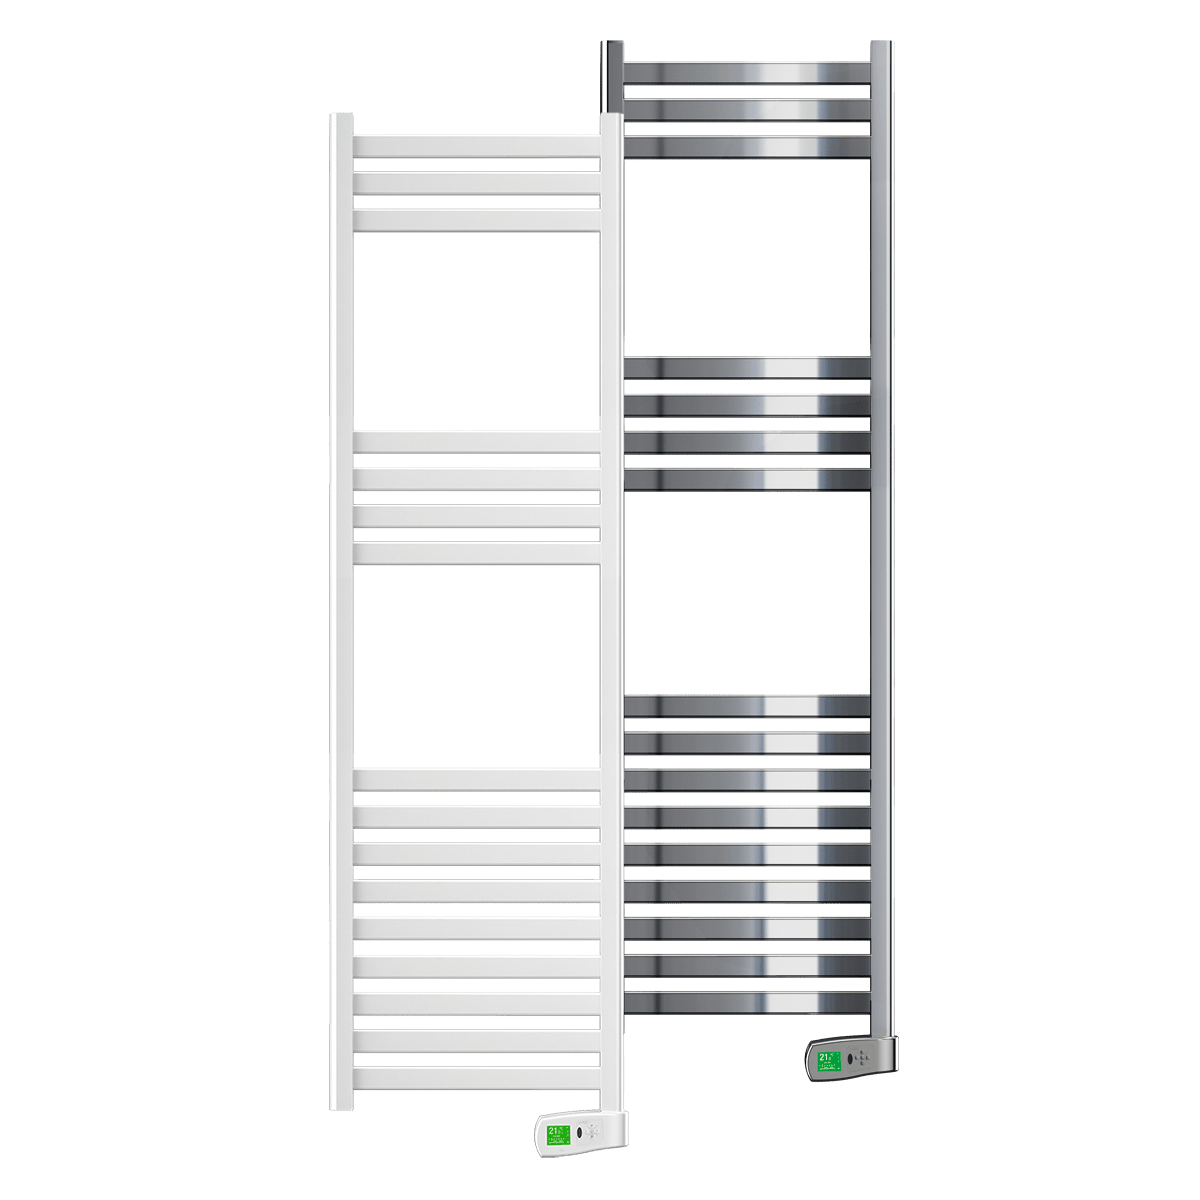 Rointe Kyros 750 W smart timer steel oil filled towel rails in white and chrome